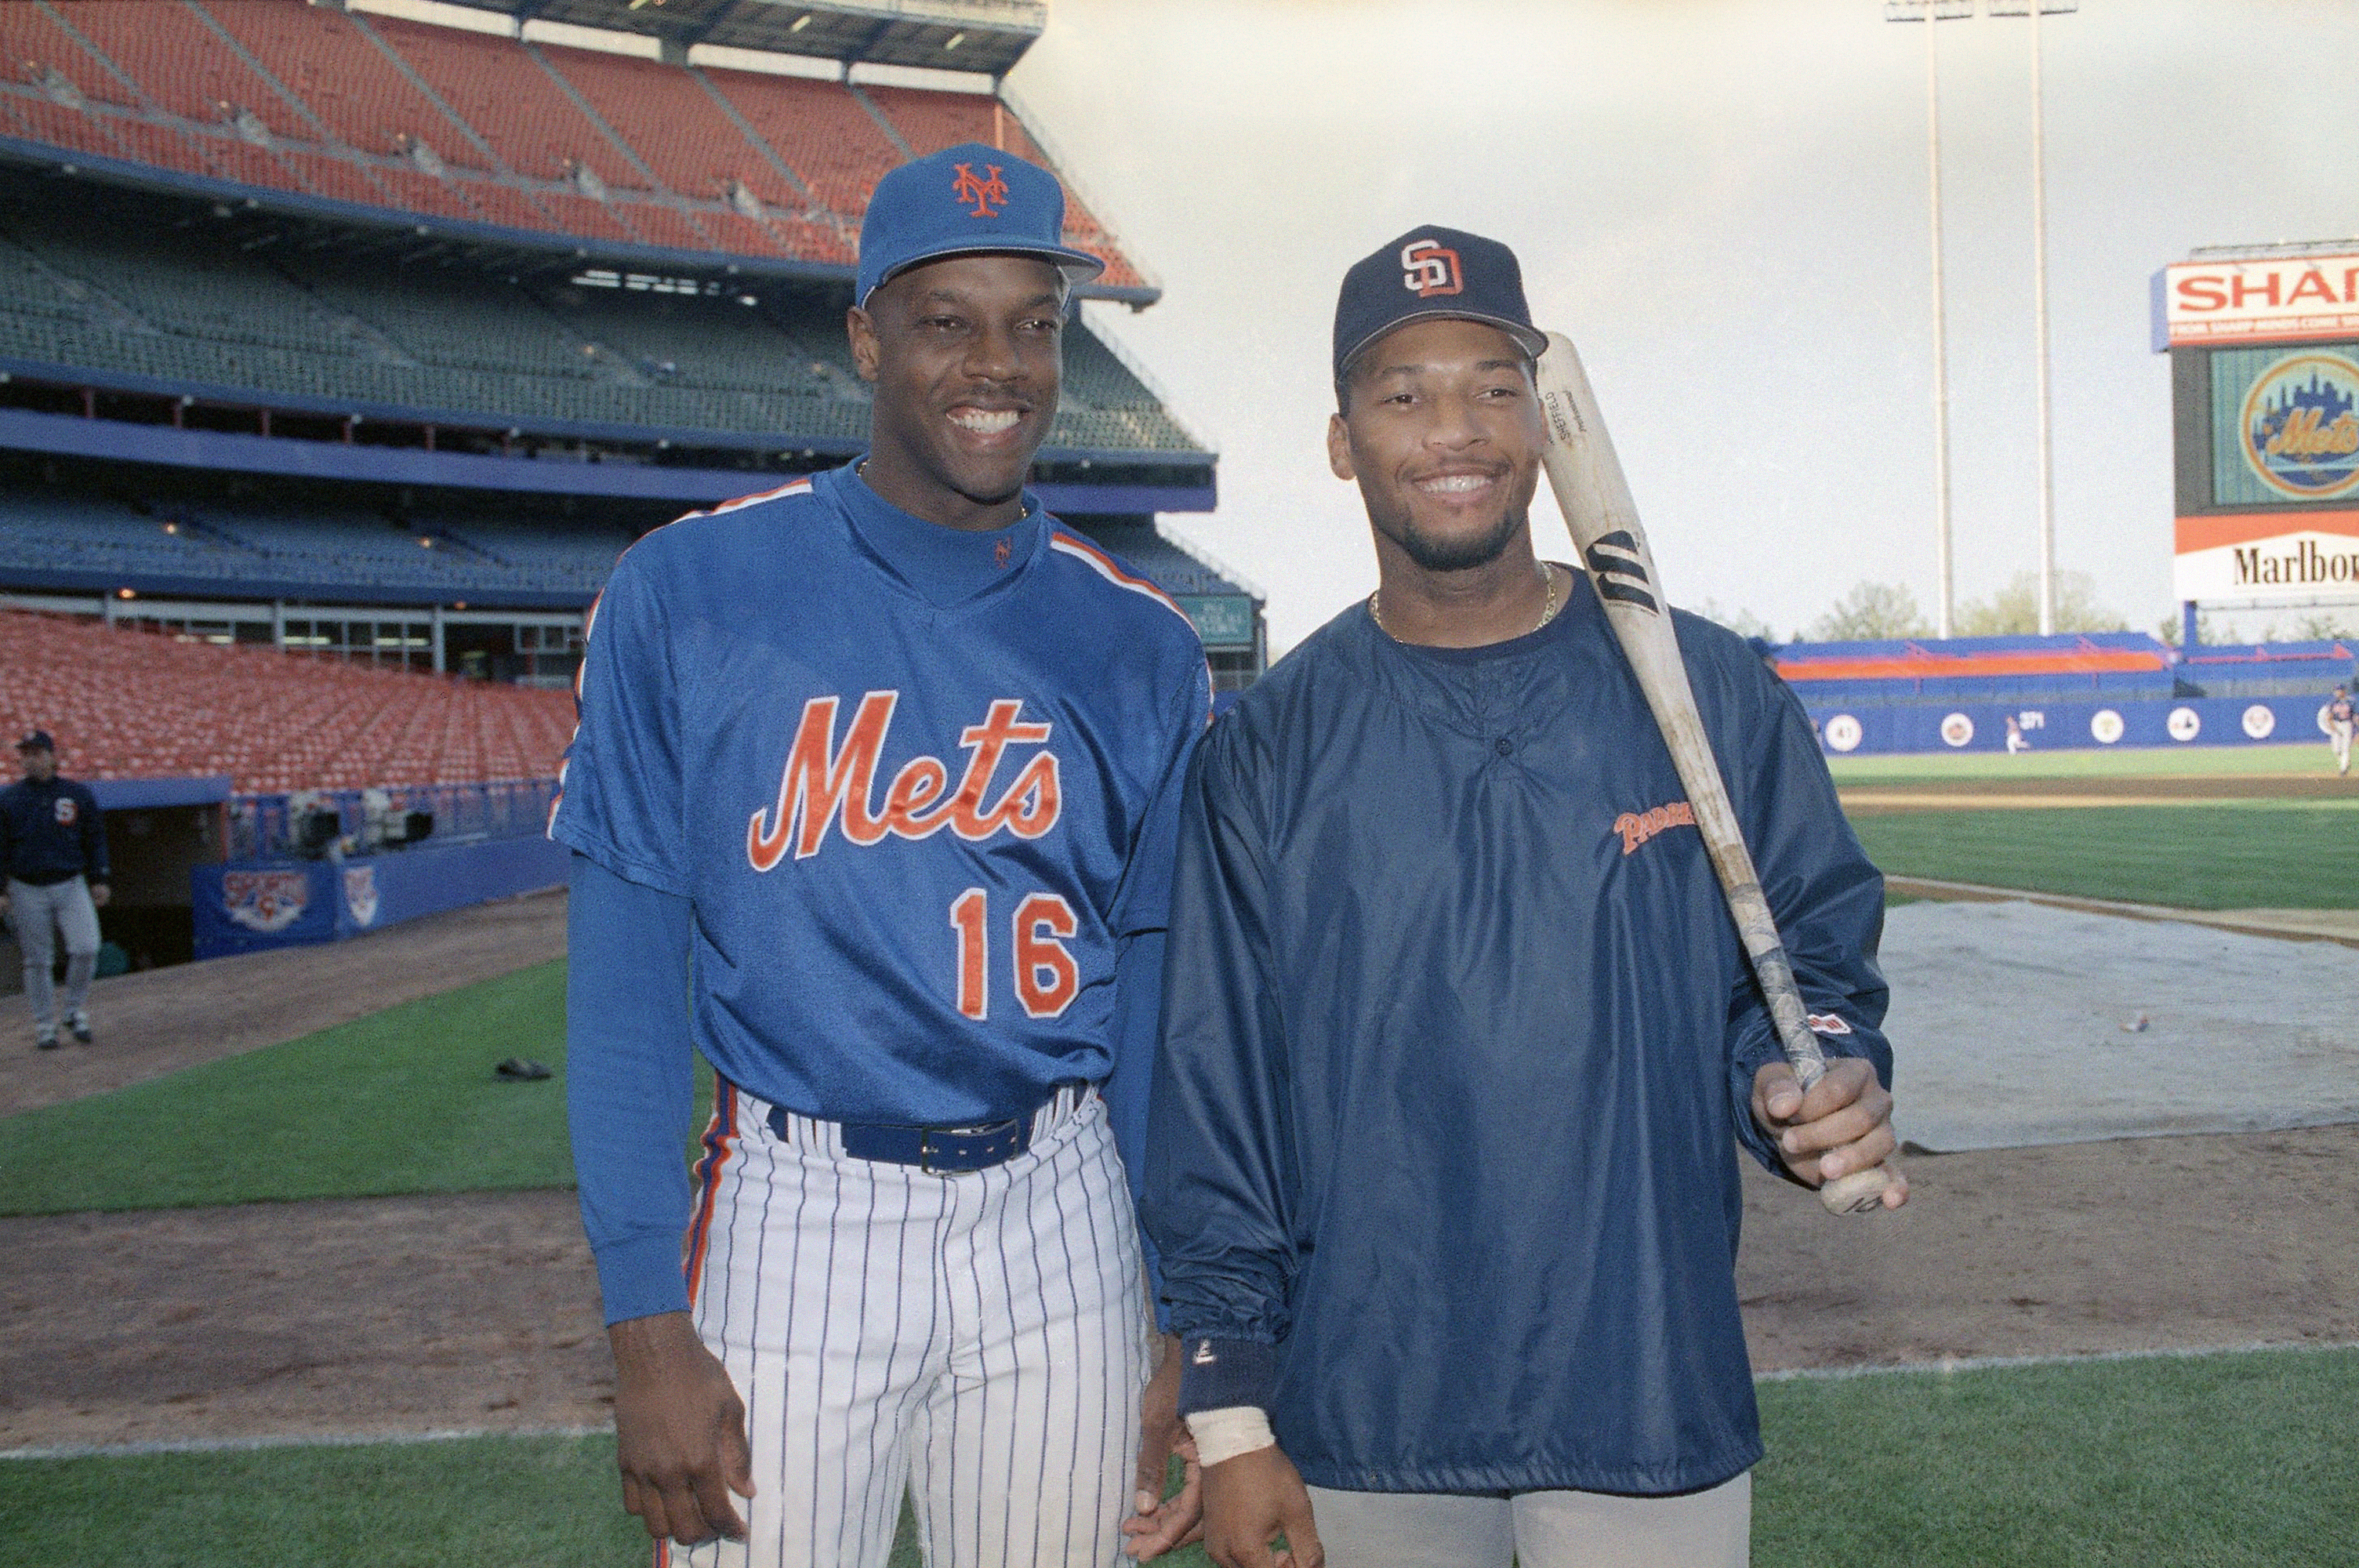 Dwight Gooden, left, pitcher for the New York Mets and his nephew Gary Sheffield, third baseman for the San Diego Padres, share a laugh before their teams get together and play at Shea Stadium in New York, Monday, May 11, 1992. Gooden will take the mound and Sheffield will play third. (AP Photo/Richard Harbus)